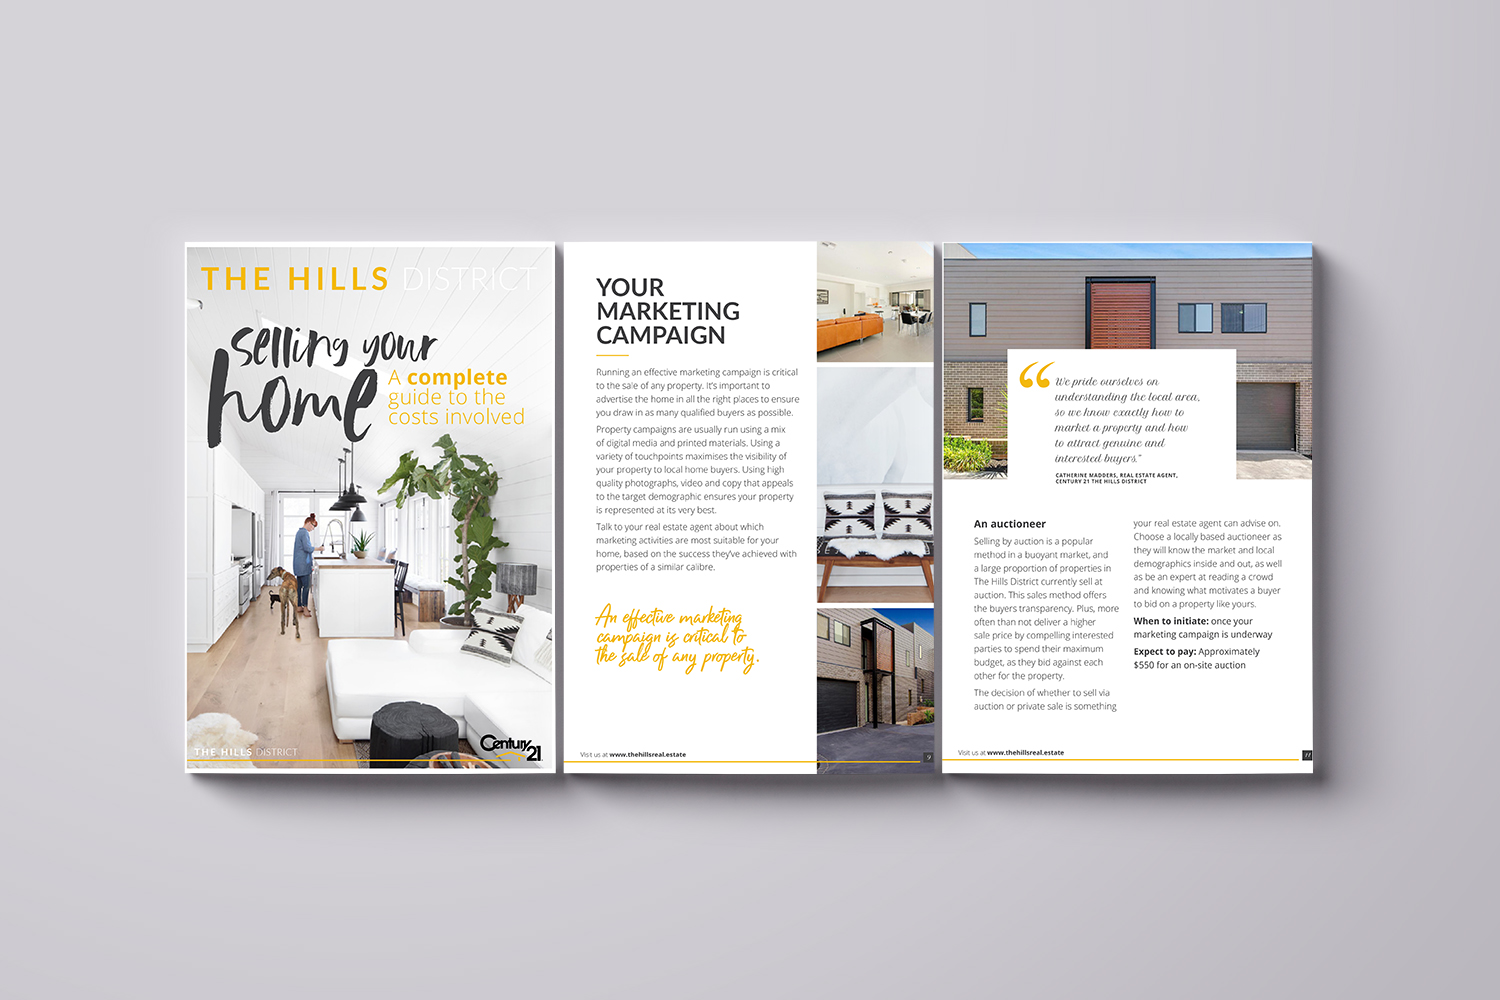 The Hills District – Century 21 Online Guide Design for Hoole.co